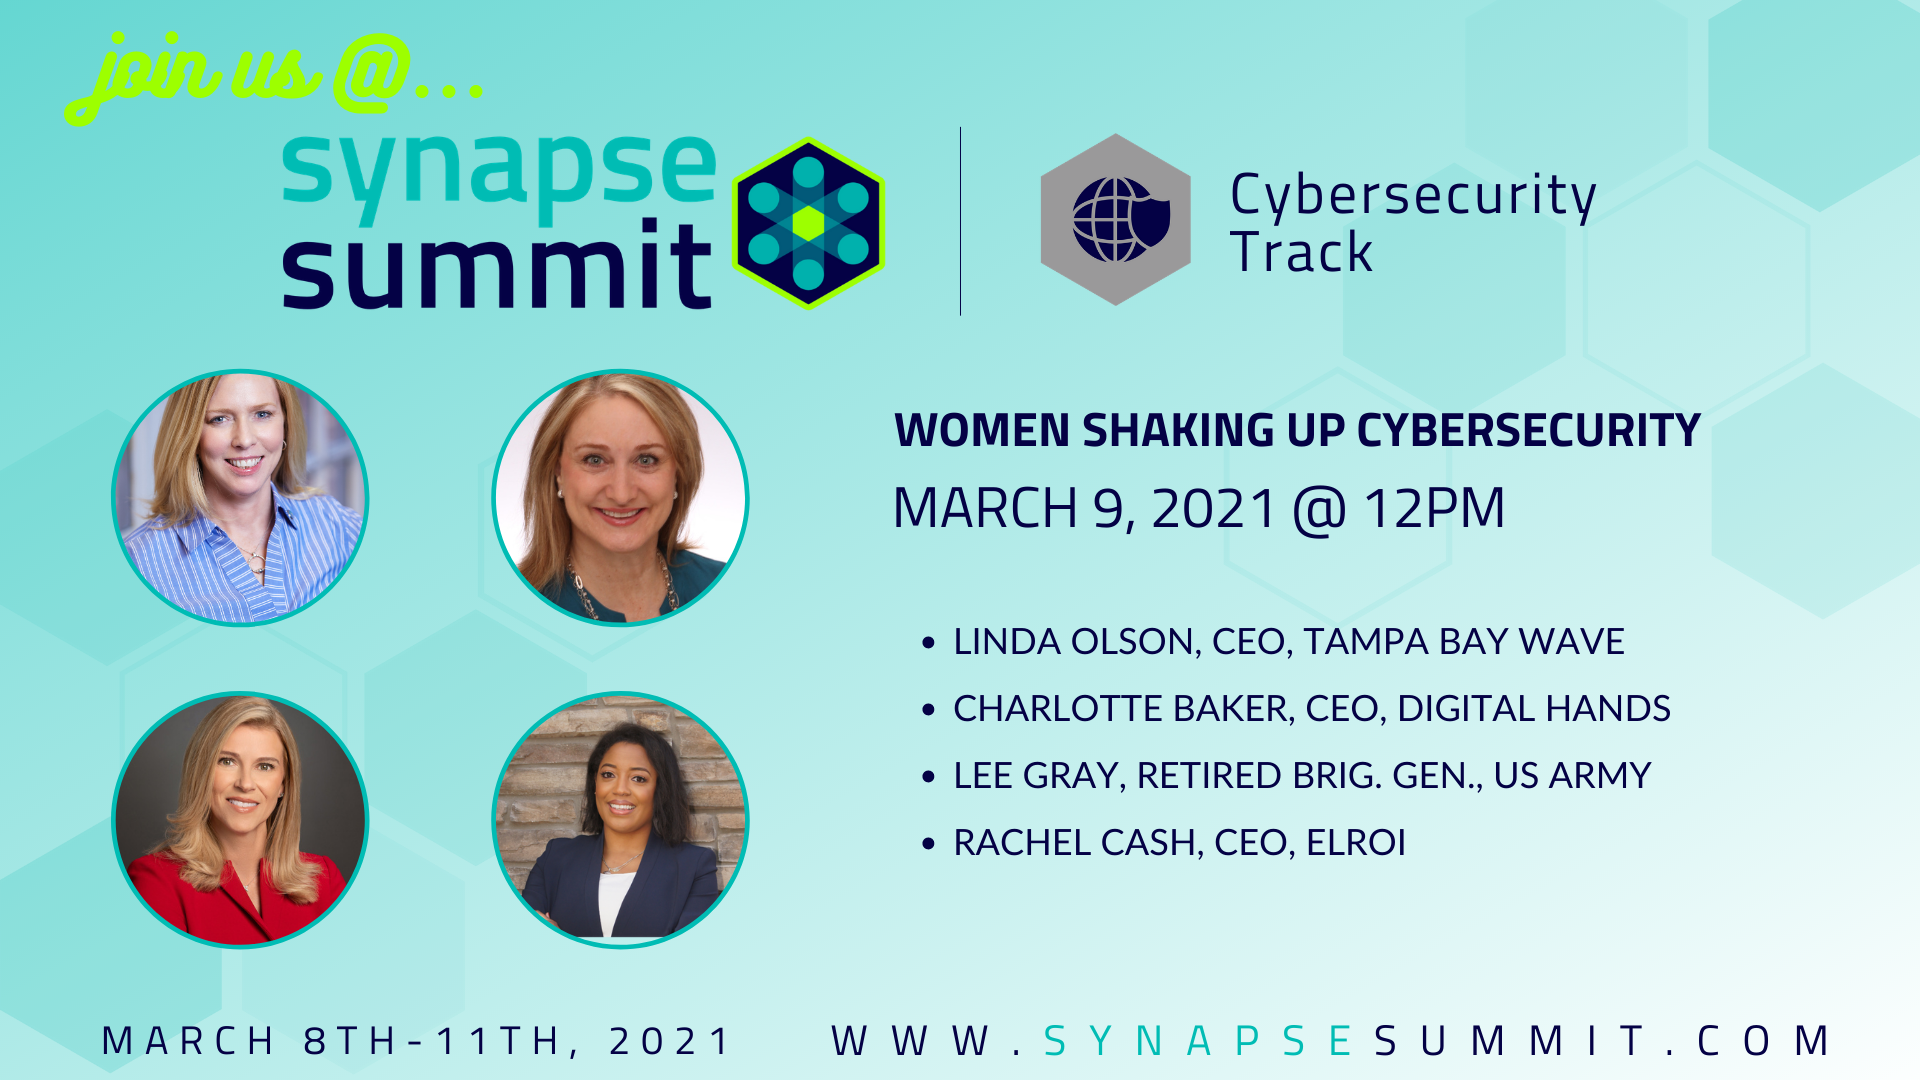 Women Shaking Up Cybersecurity - Wave - Synapse Summit 2021